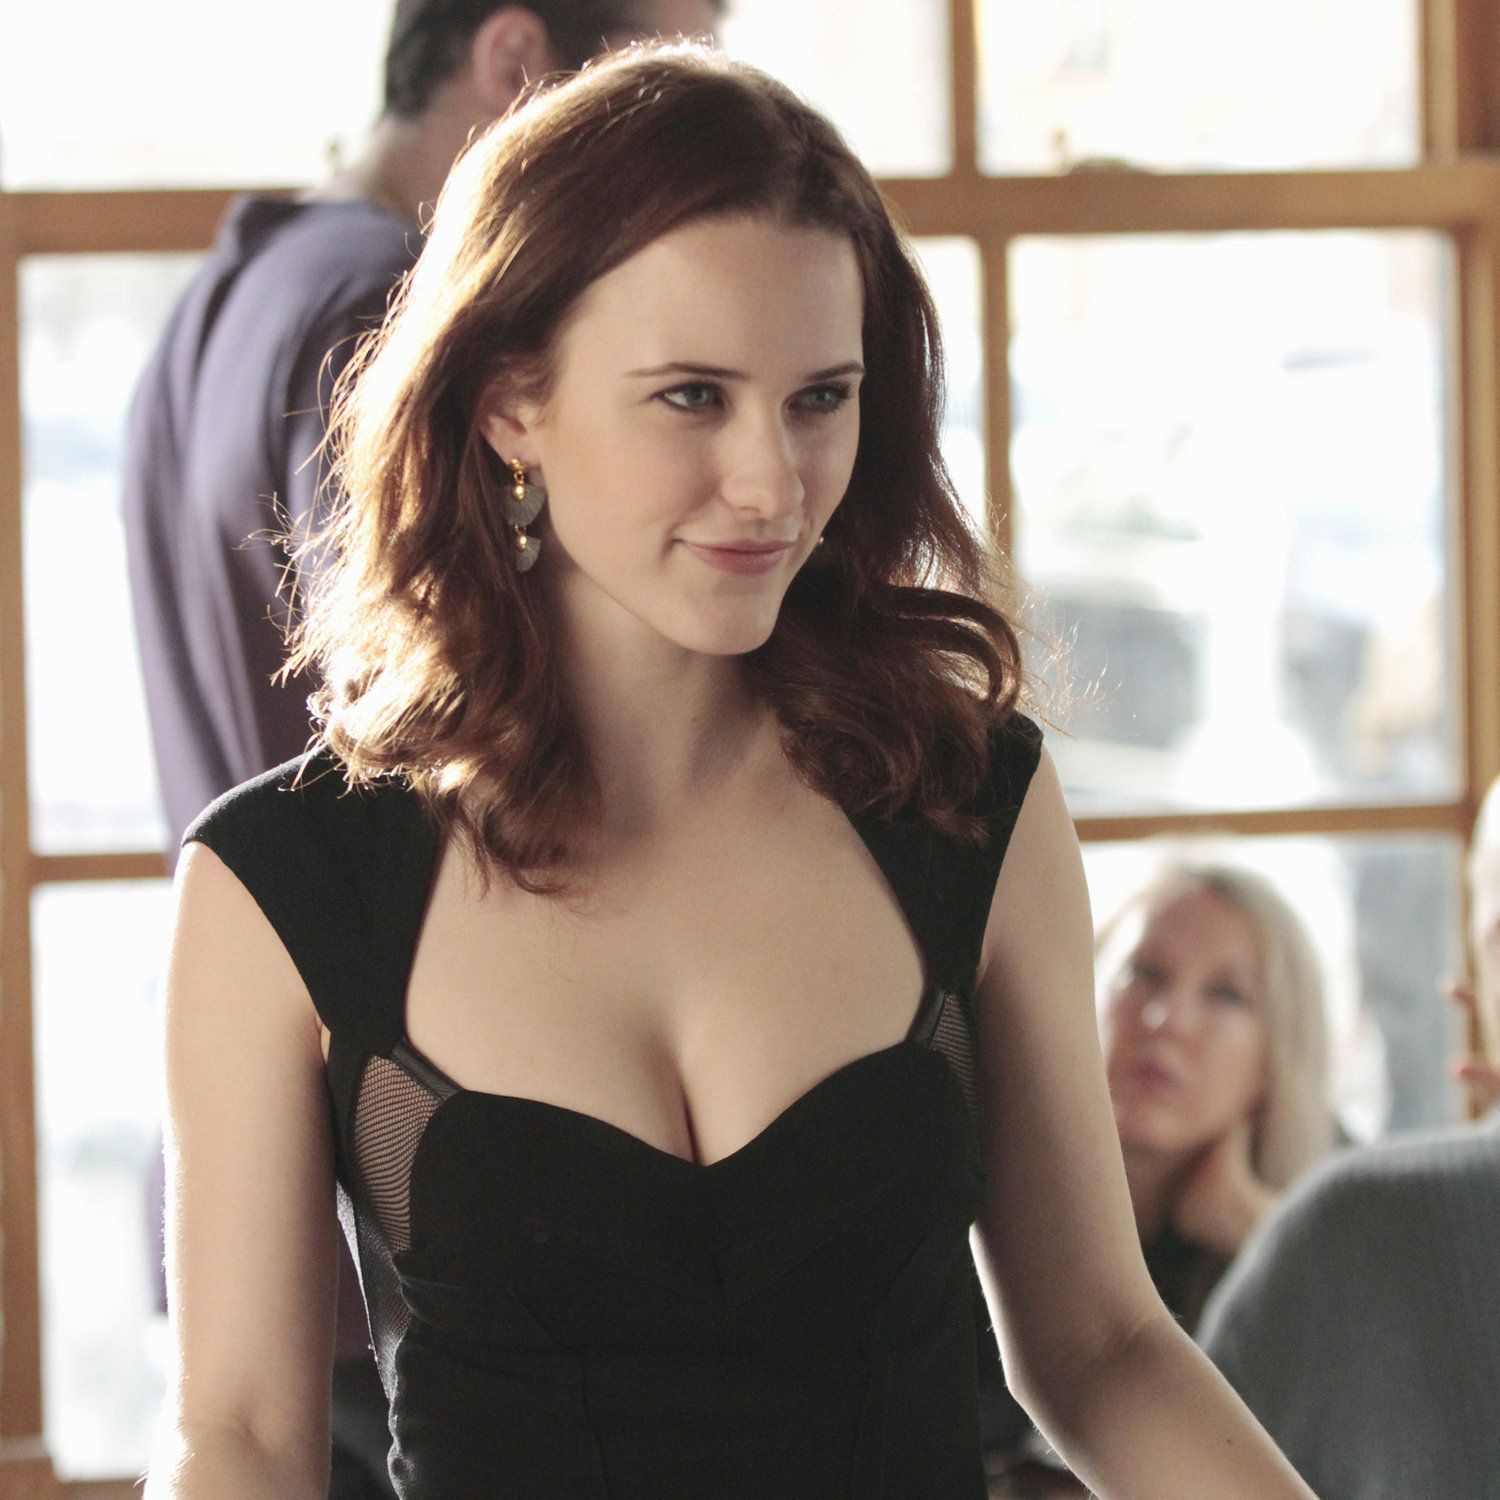 Hacked Rachel Brosnahan nude photos 2019